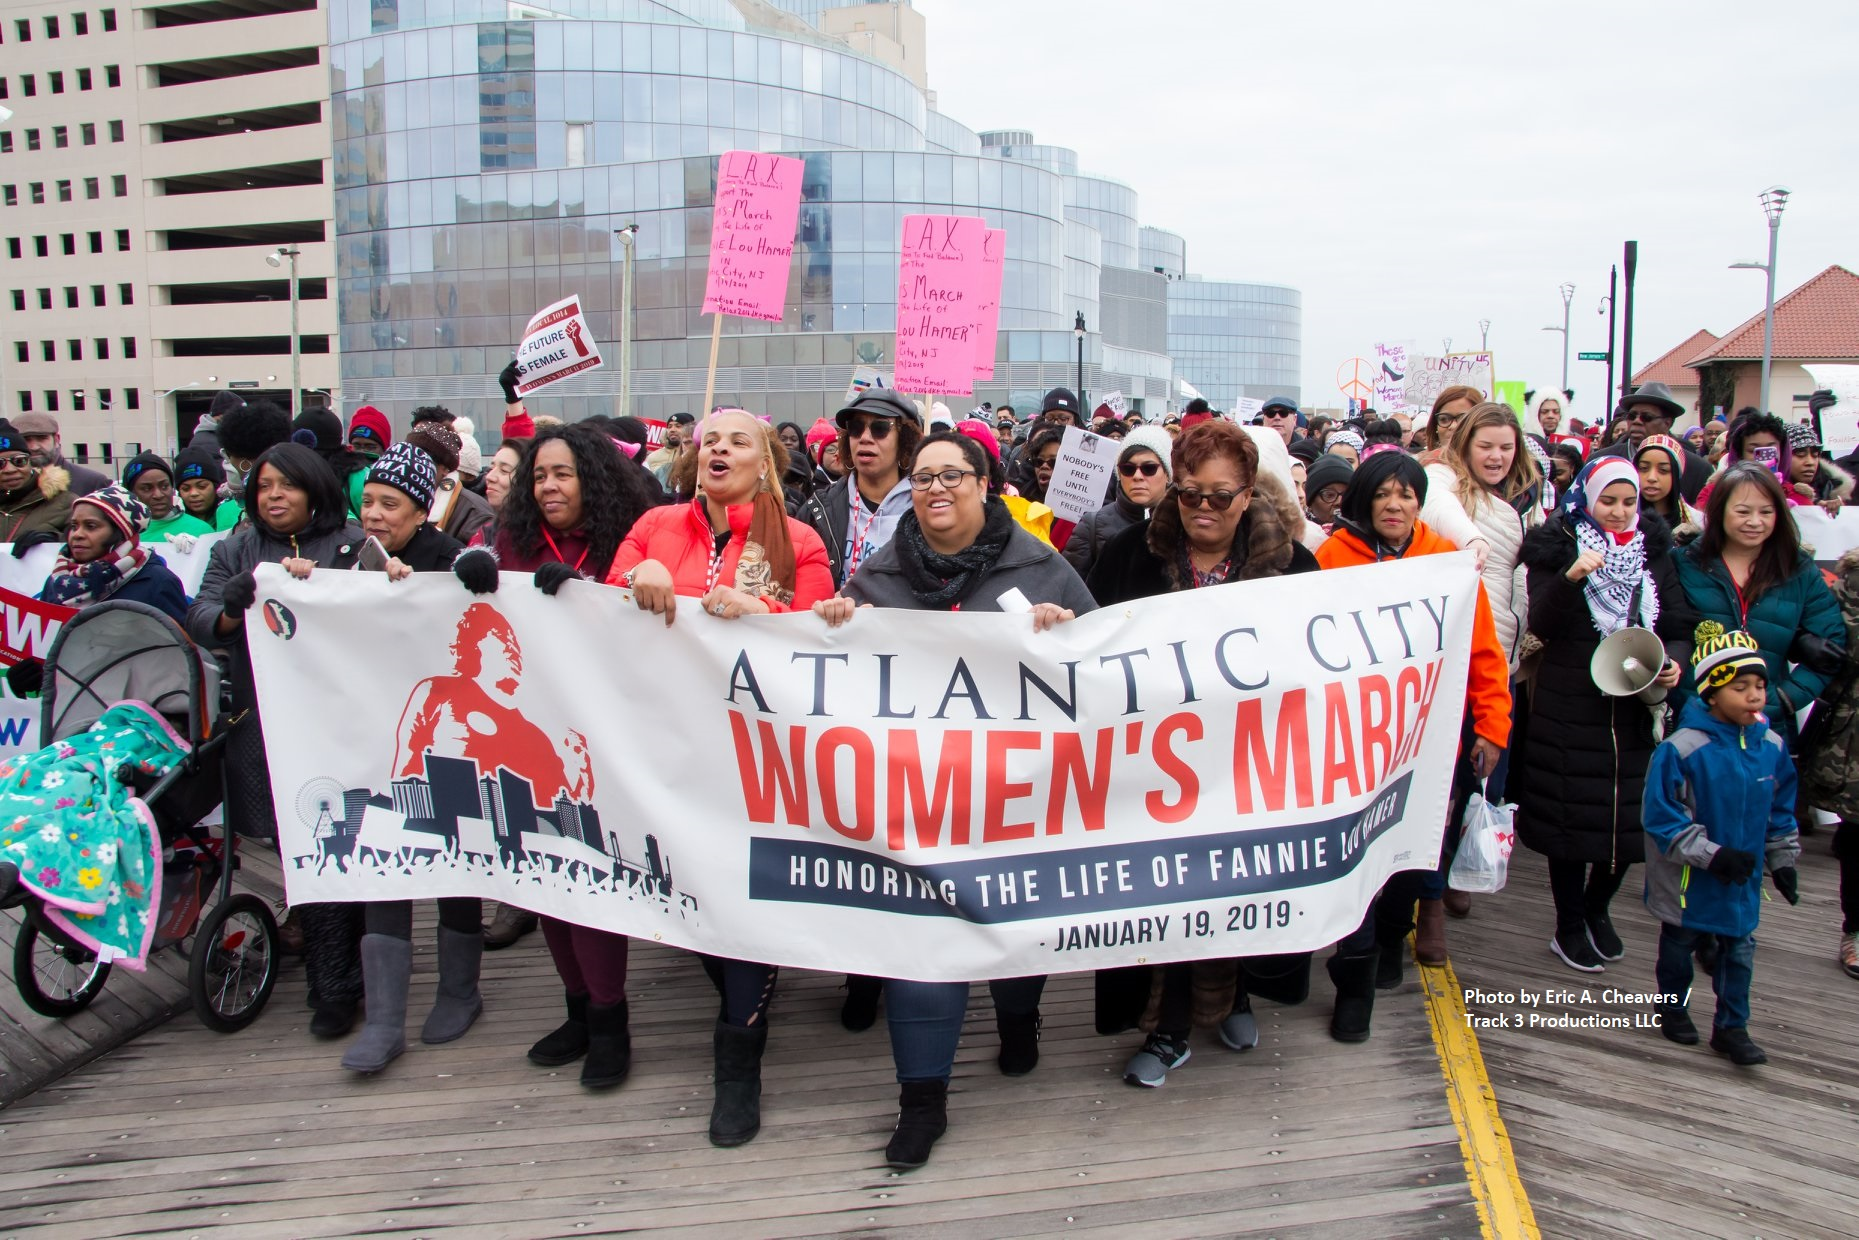 Atlantic City Women's March, January 19, 2019 - Photo by Eric A. Cheavers / Track 3 Productions LLC